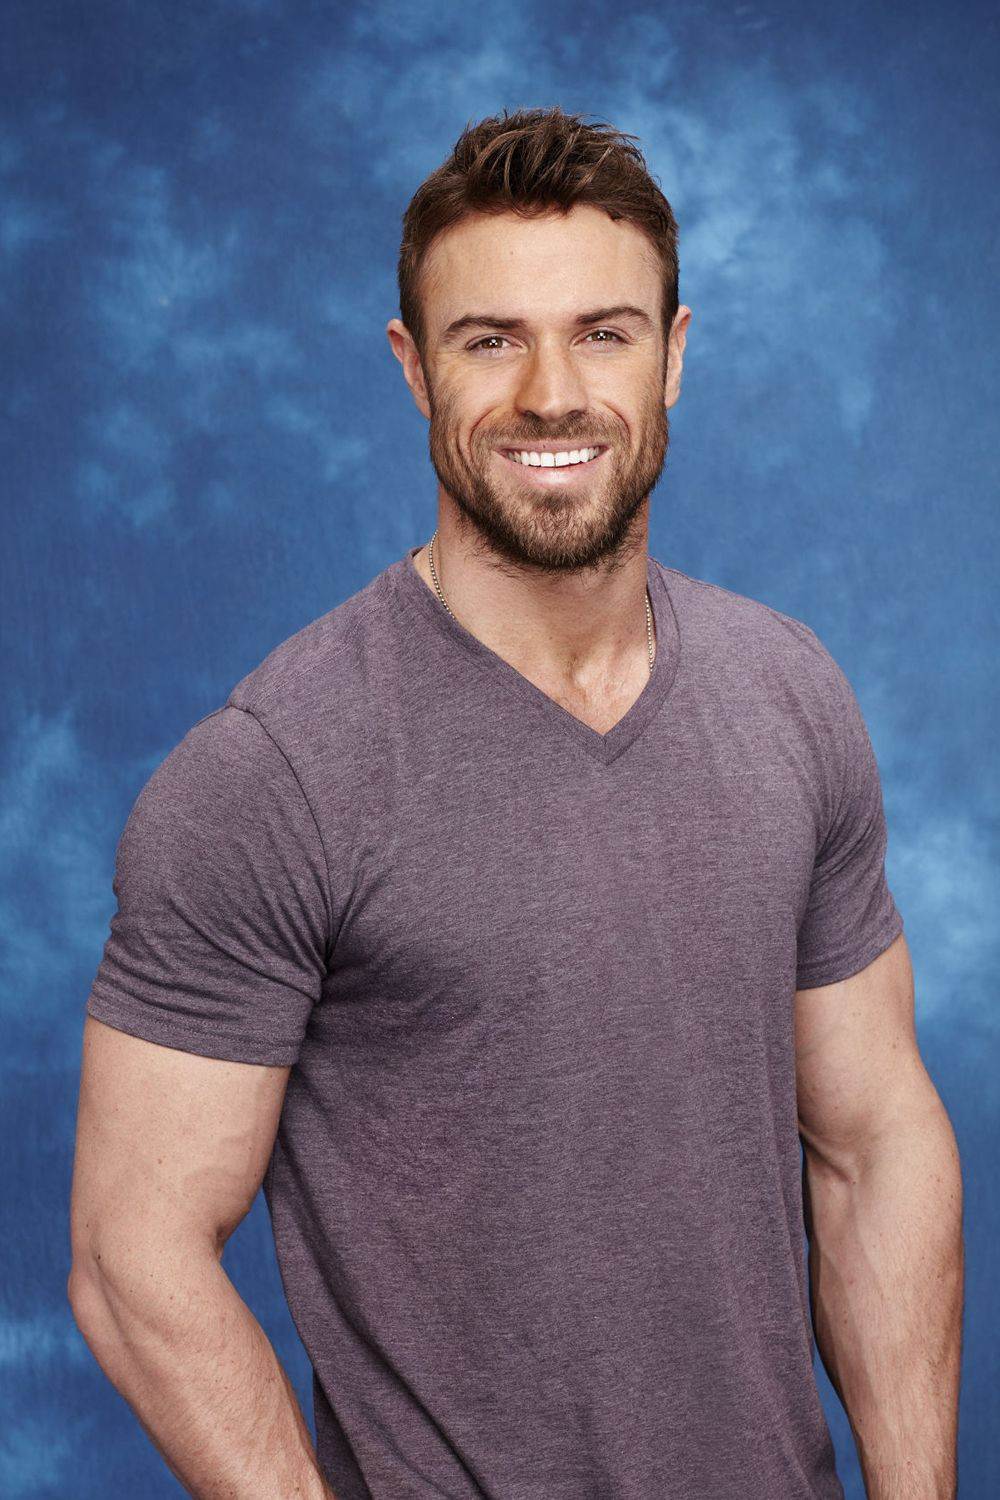 Chad Johnson ('The Bachelorette' Season 12) It was genuinely impossible to ignore Chad Johnson on The Bachelorette season 12. While competing for the affection of JoJo Fletcher, Johnson became known for his outrageous verbal threats (most of which stemmed from his beef with castmate Evan Bass, which even got physical at one point ).